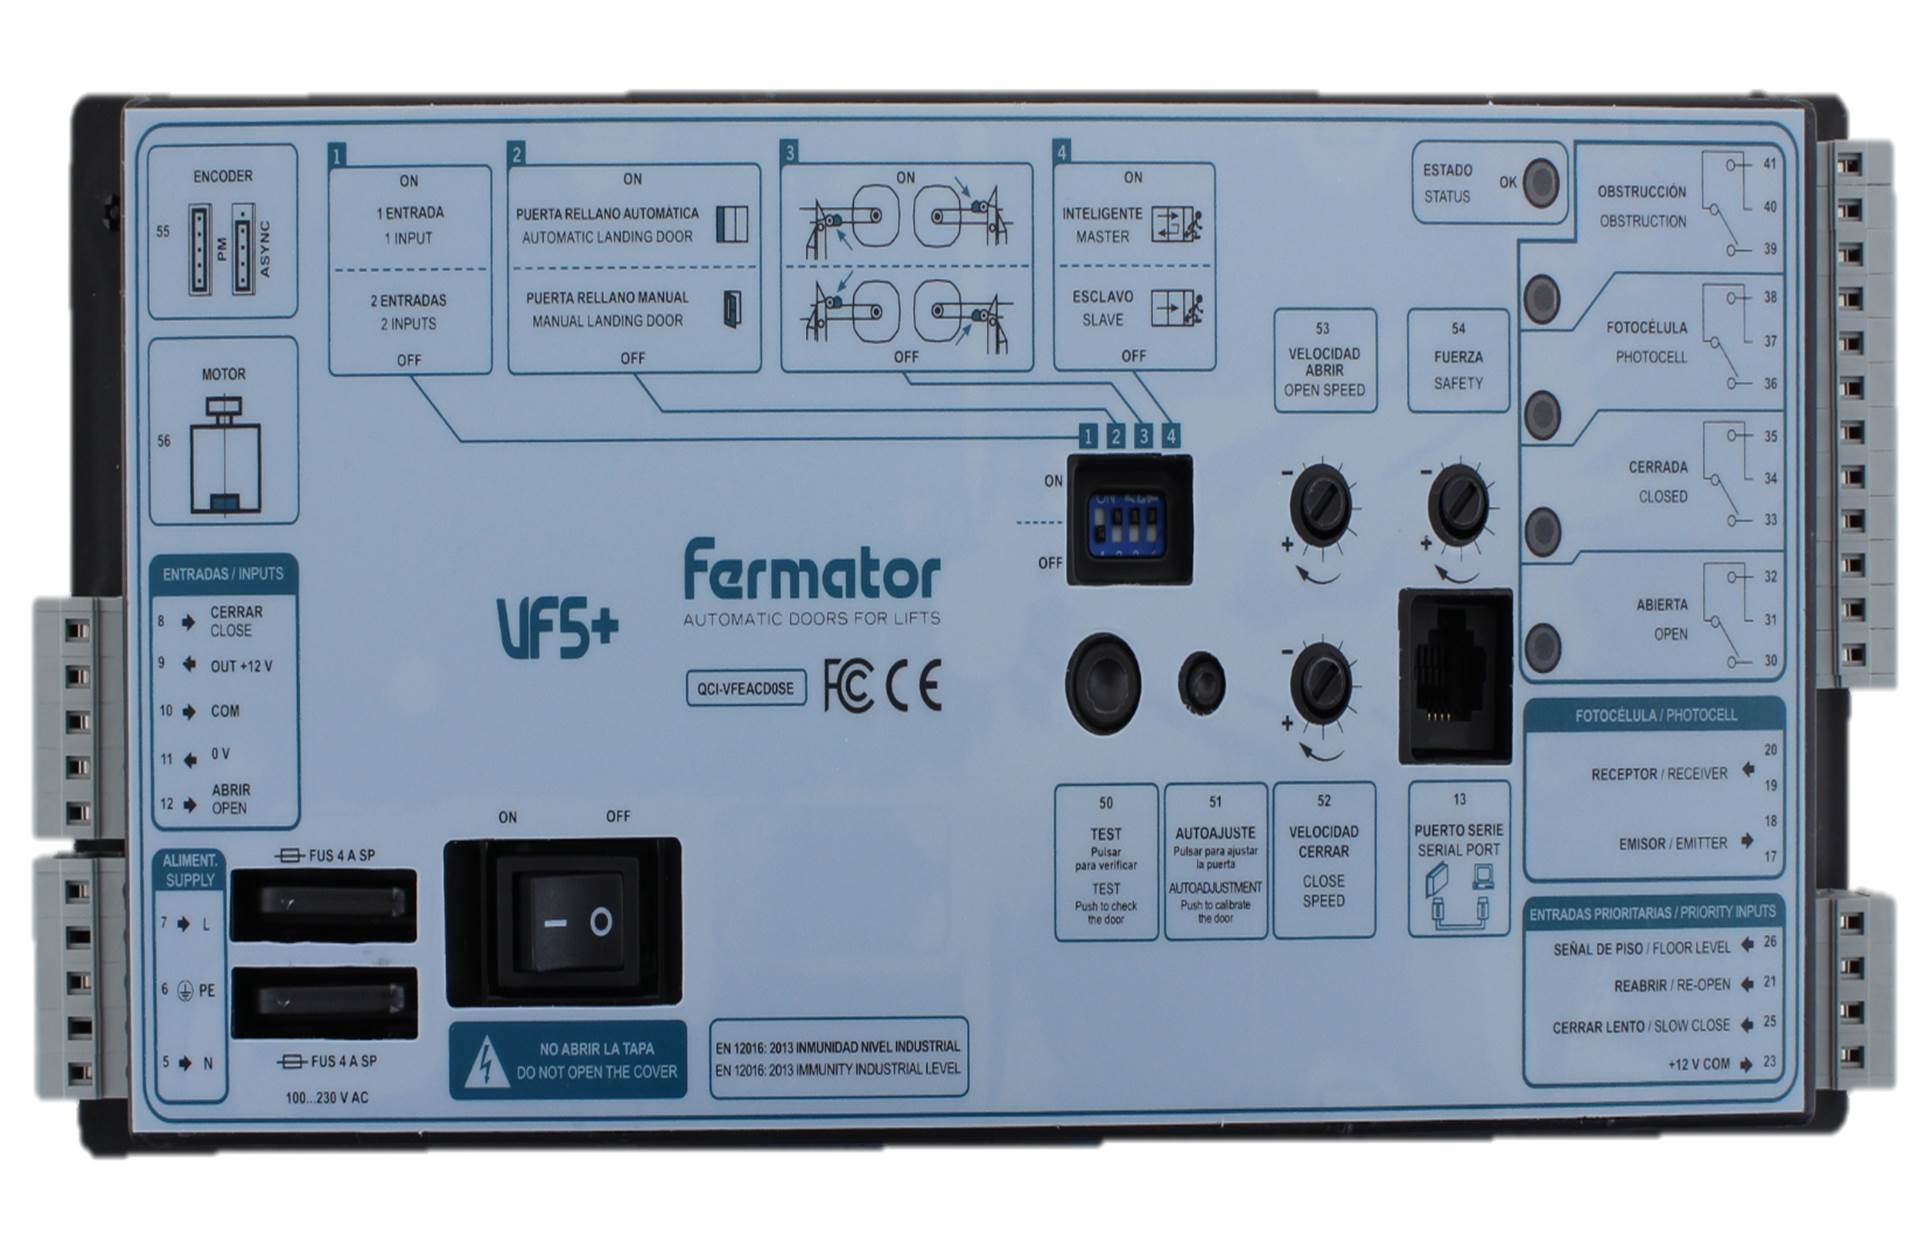 hissmekano door controller pm fermator vf5 right english label rh hissmekano com fermator door installation manual fermator door gear manual